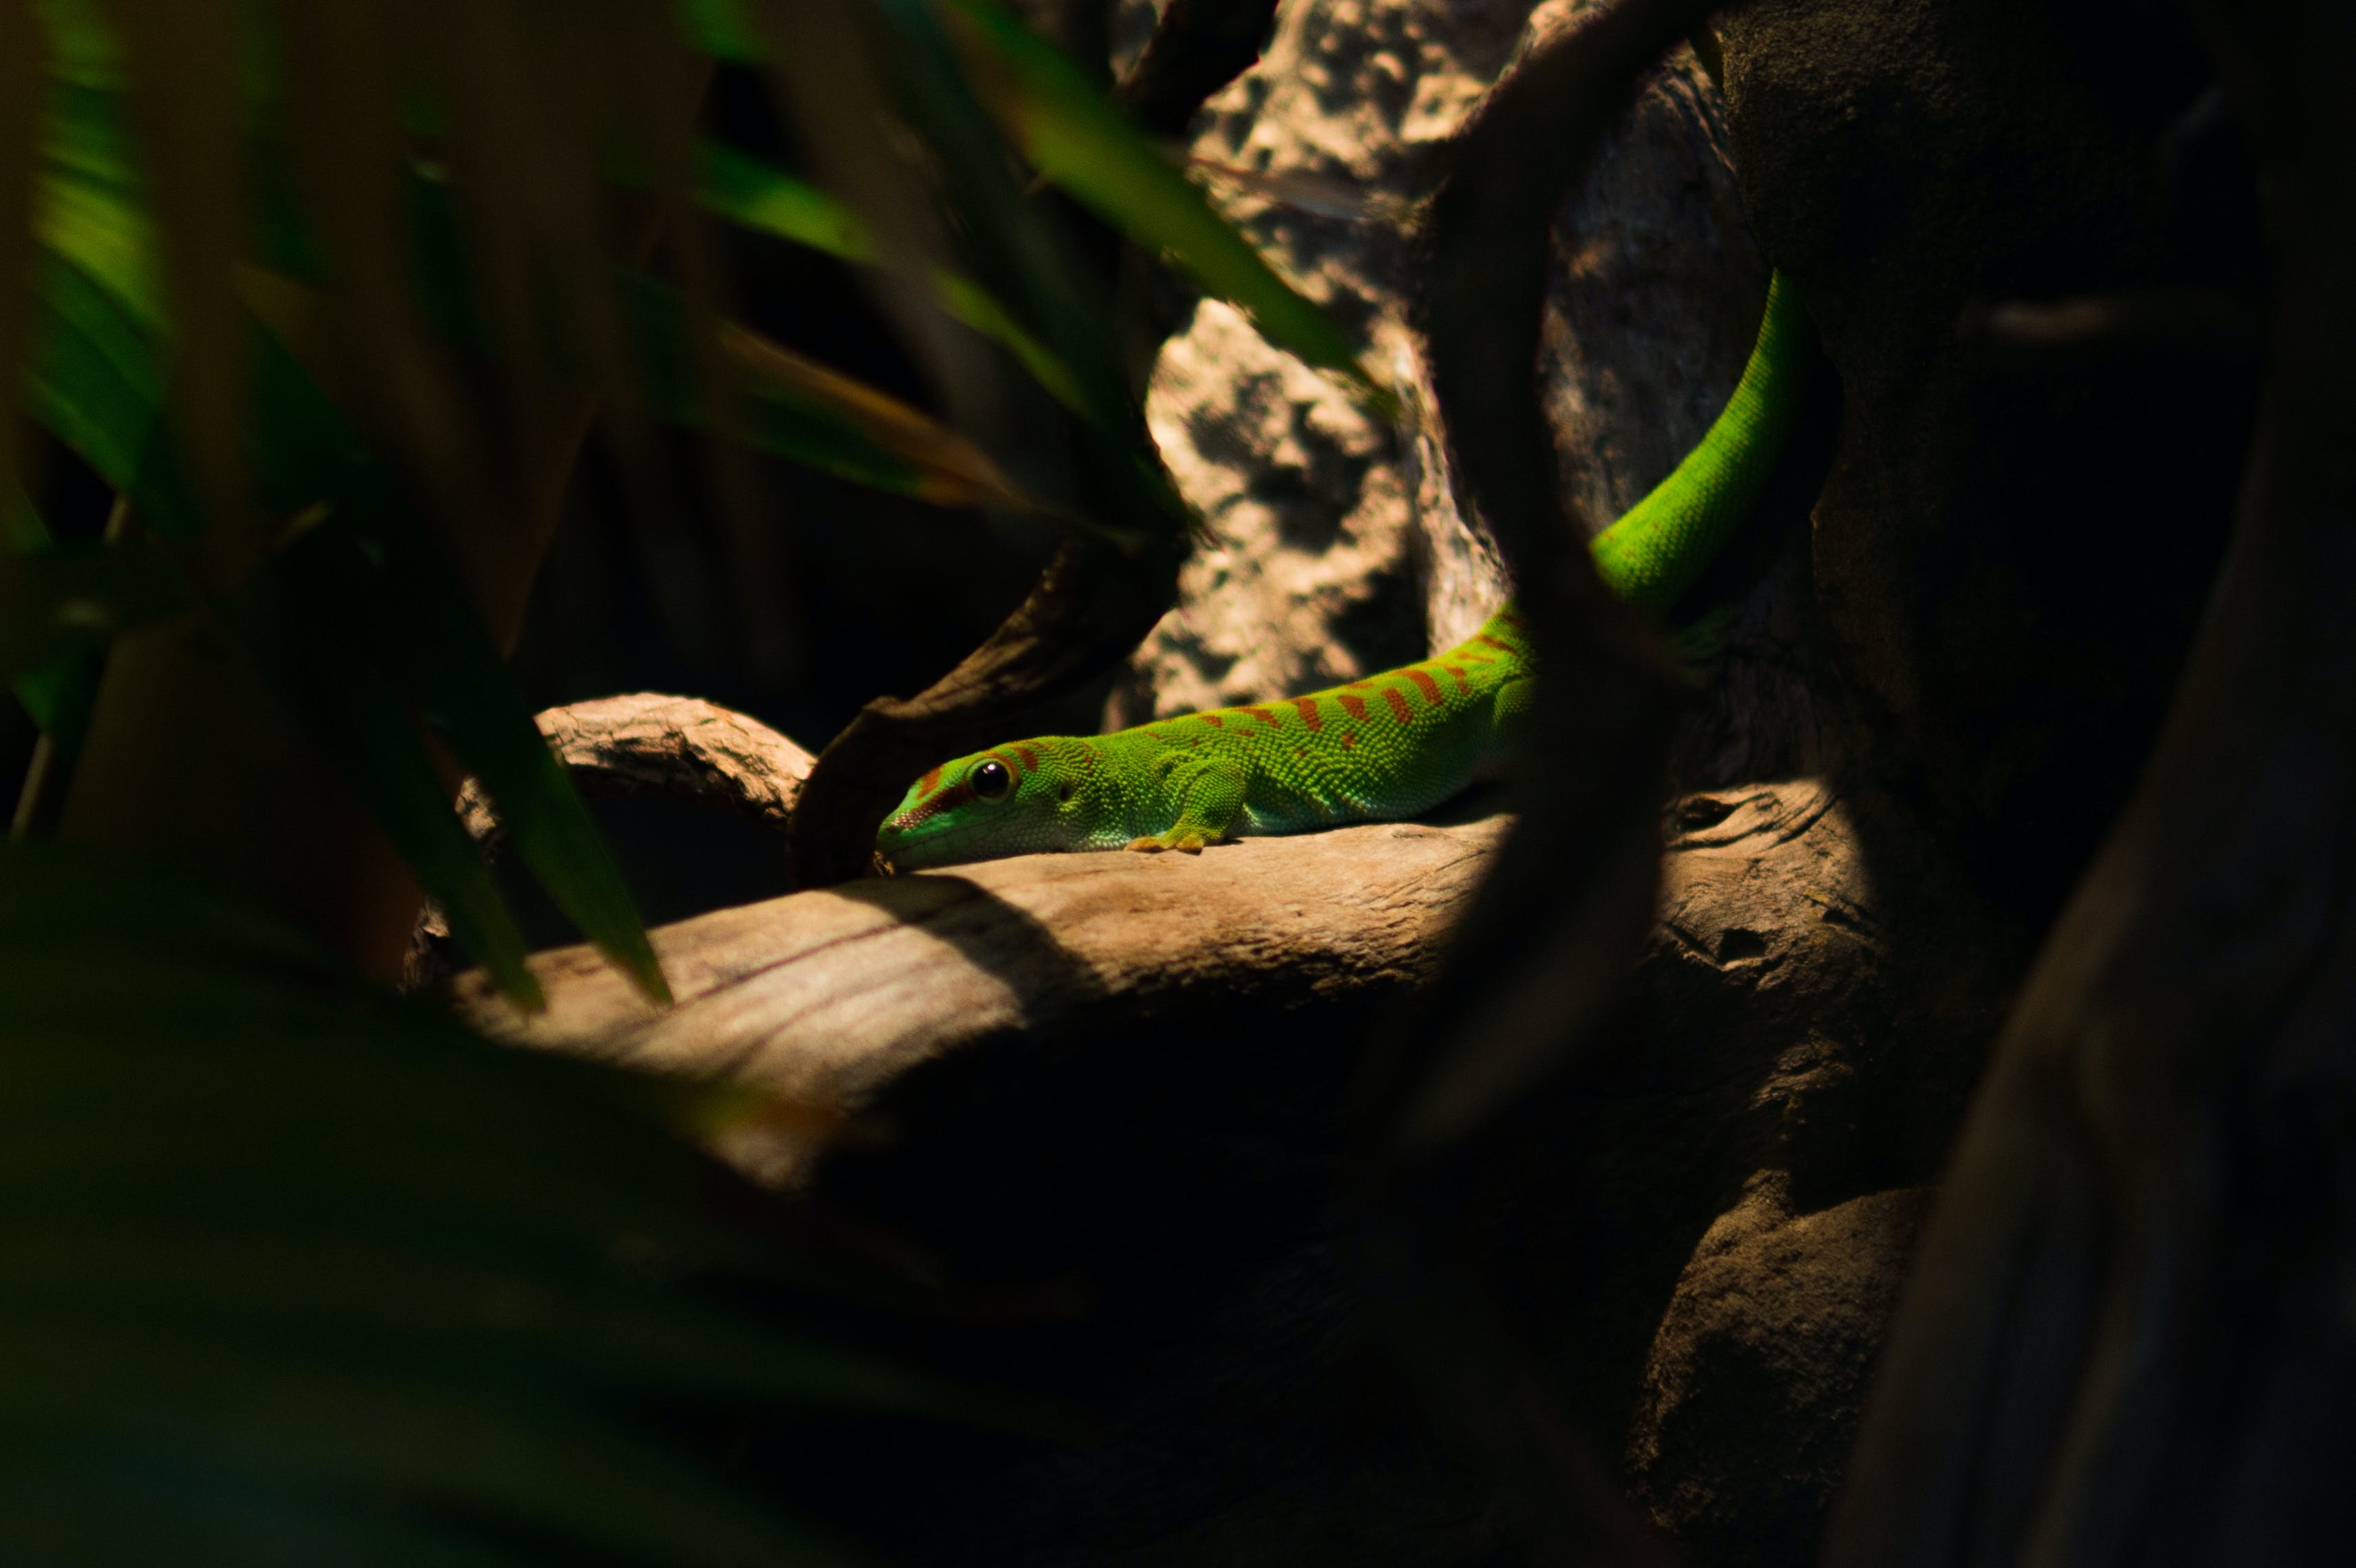 Green and Brown Iguana